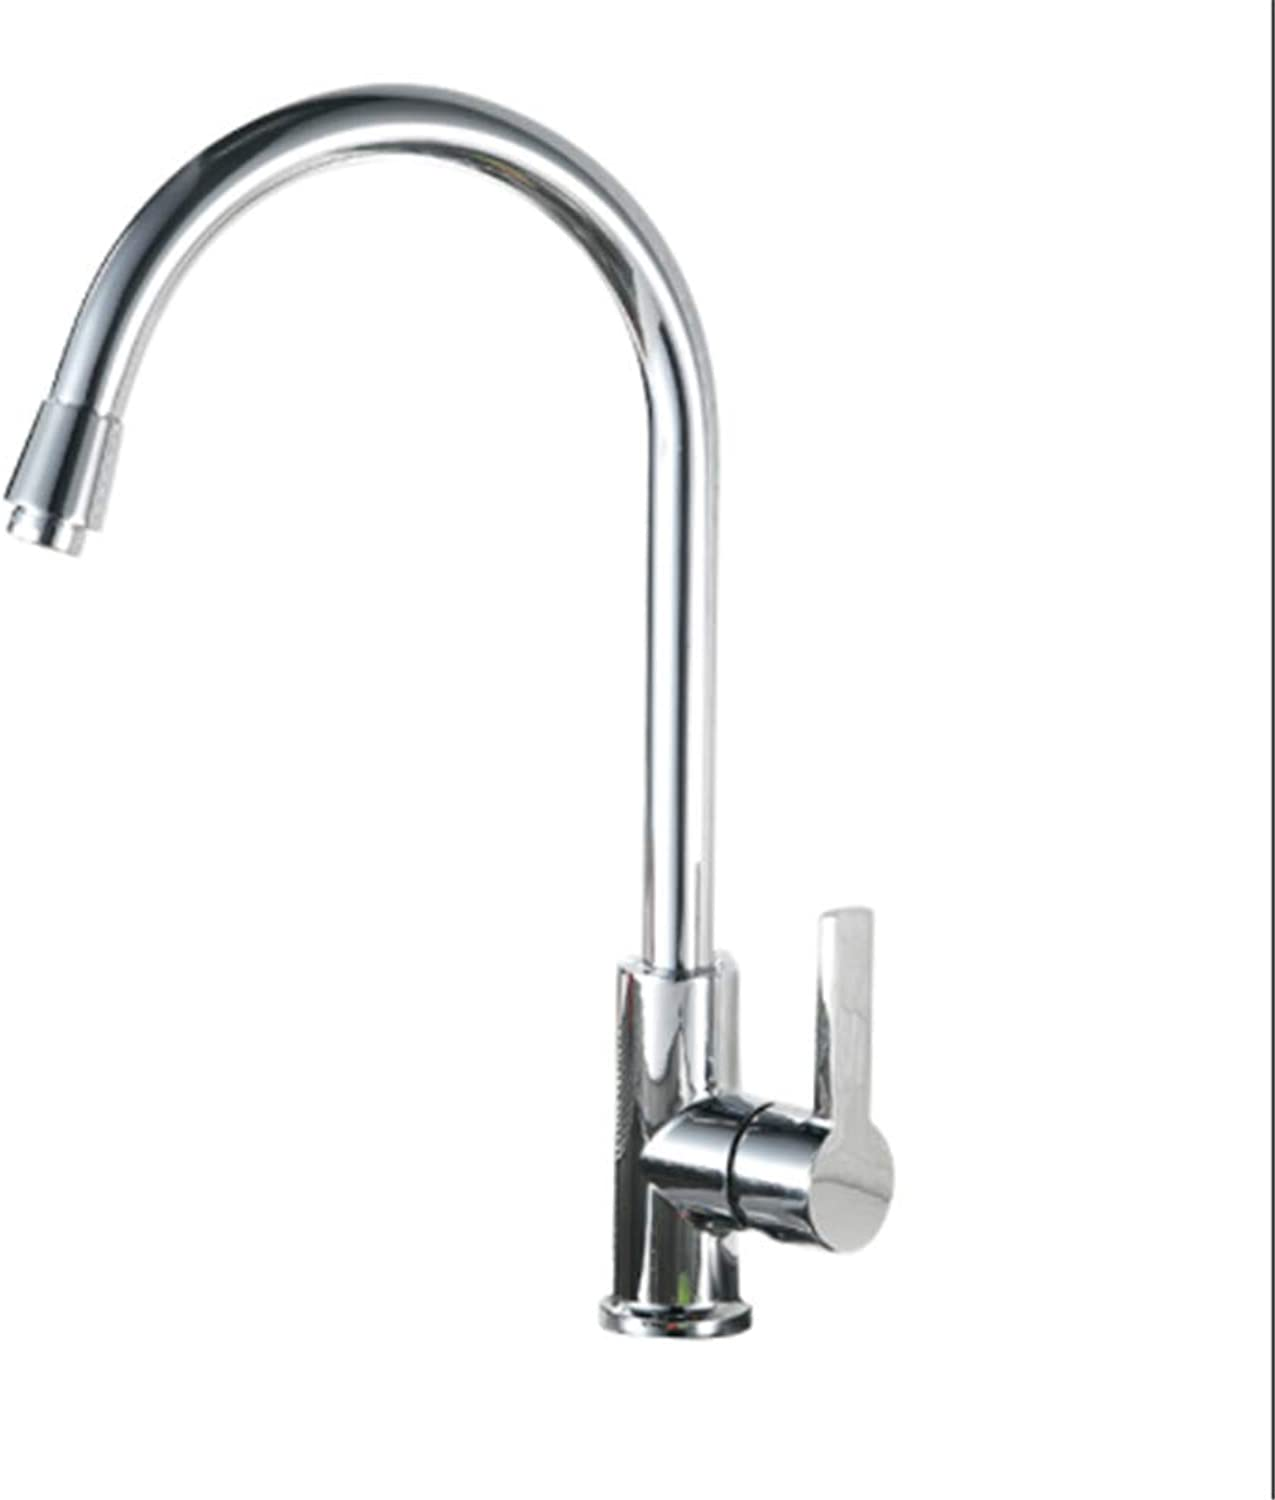 Kitchen Taps Faucetmodern Kitchen Sink Tapsstainless Steelkitchen Faucets, Hot and Cold Dishes, Washing Basins, Sink, Cooling and Heating, redary Laundry Pool.